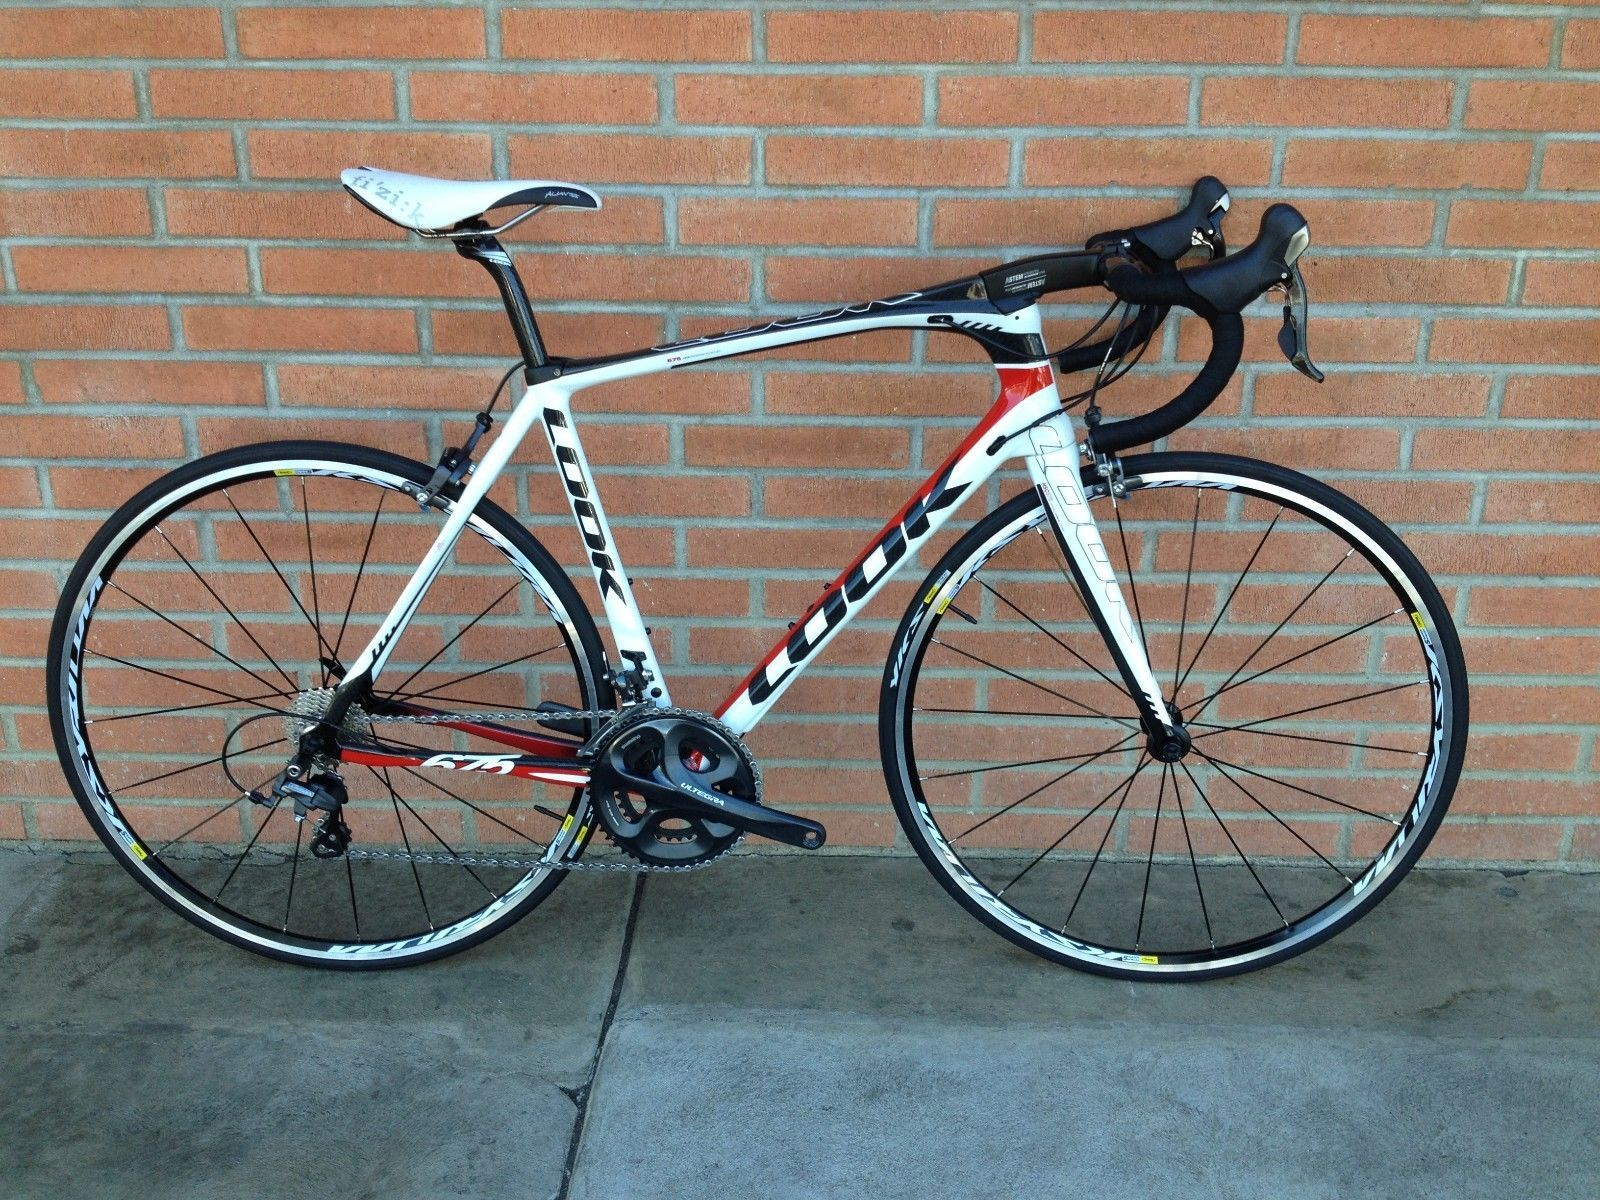 New Look 675 Carbon Road Bike Shimano Ultegra Size Large In